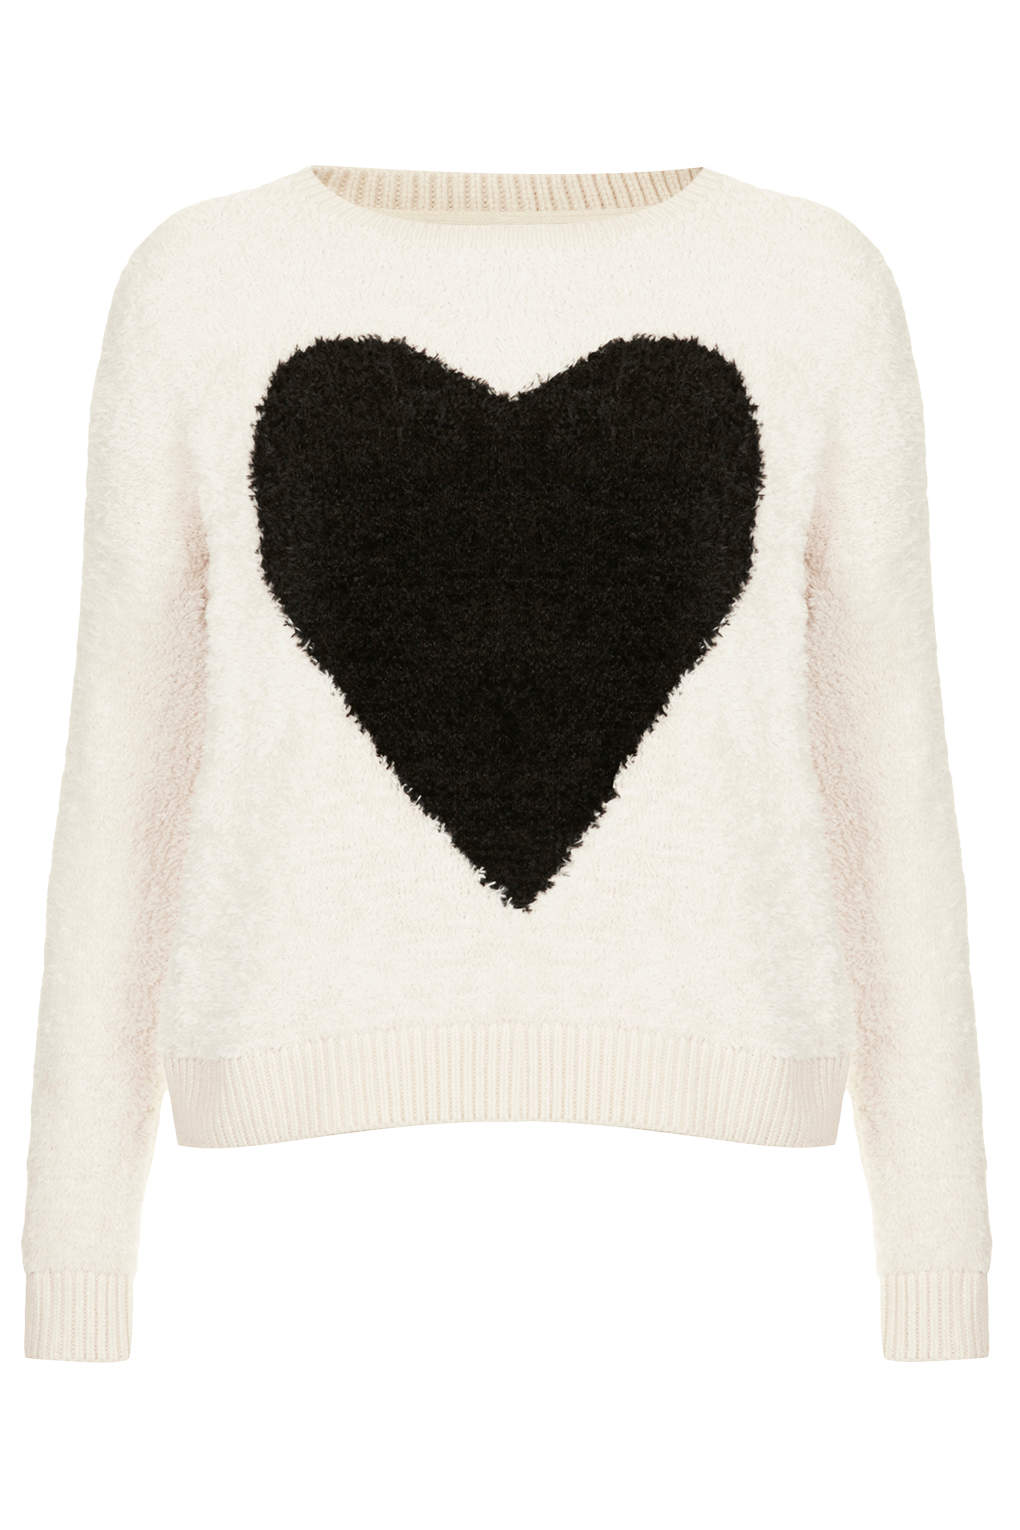 BLACK HEART: Fluffy Heart Jumper available at Topshop